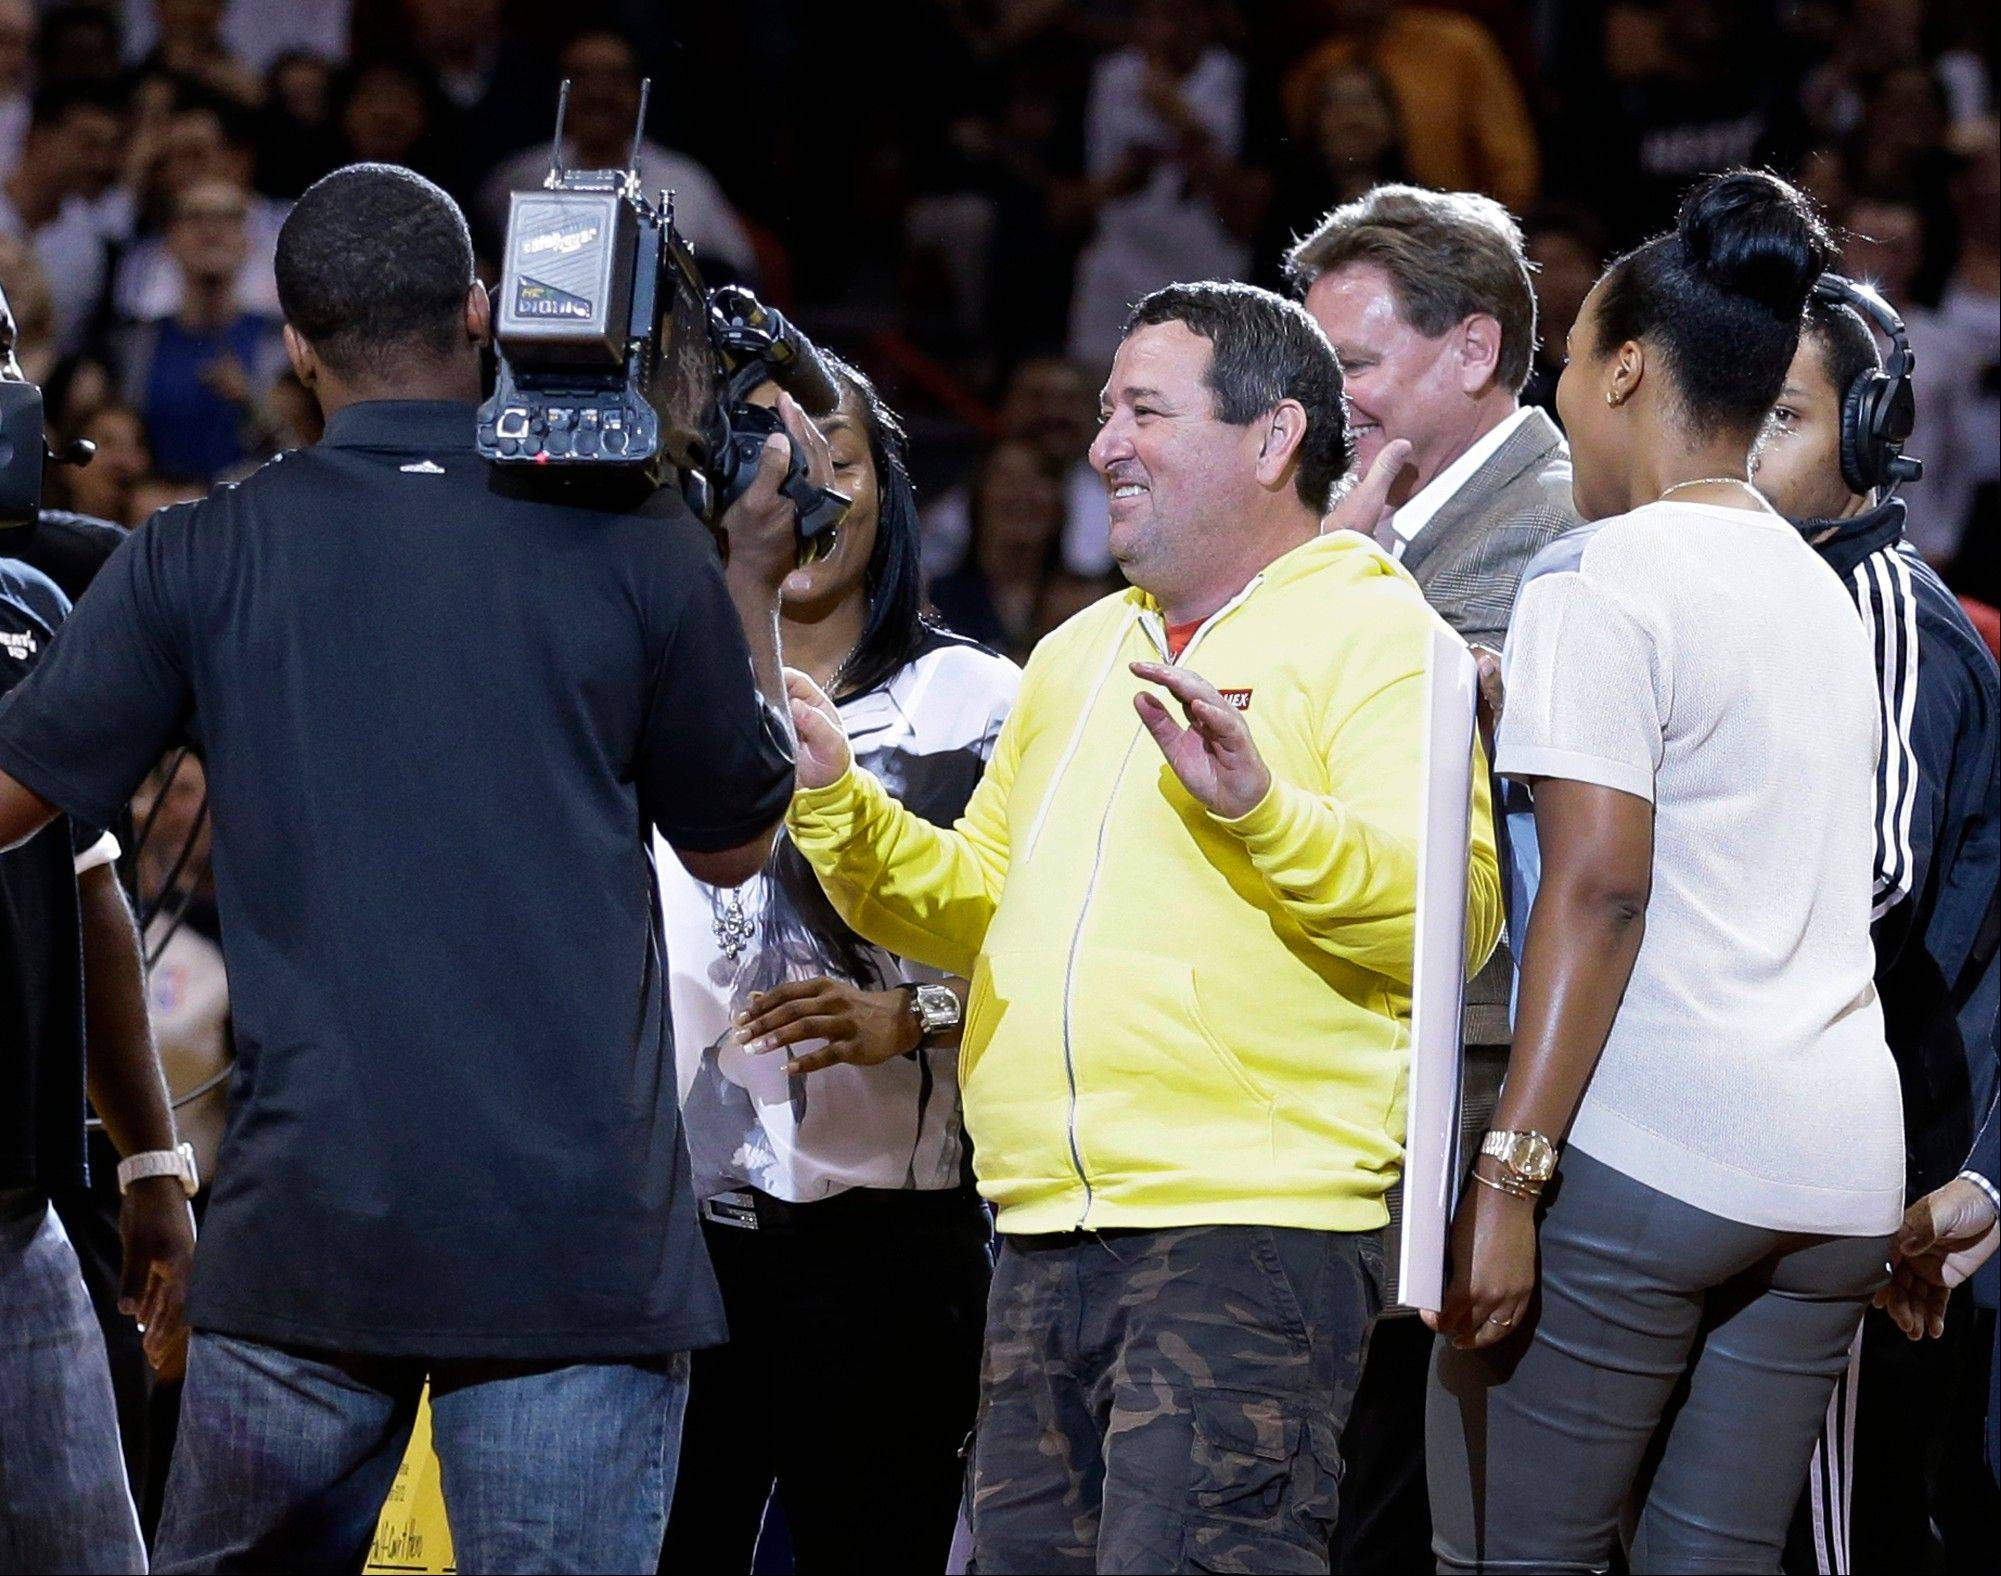 McHenry man wins $75,000 on NBA half court shot